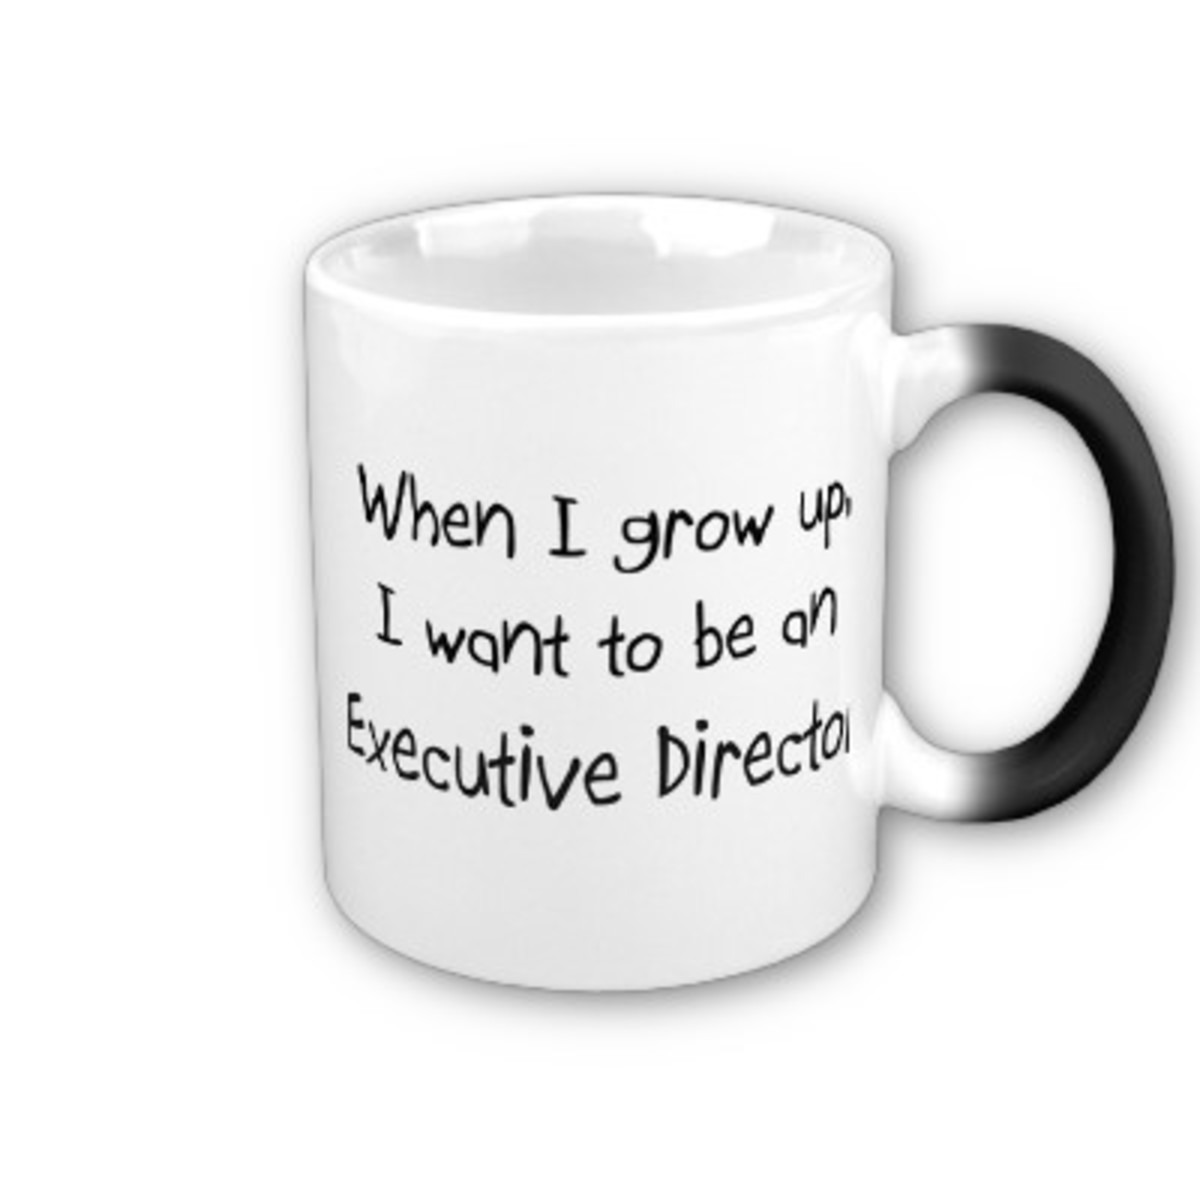 20 Great Websites for Finding Executive Director Jobs